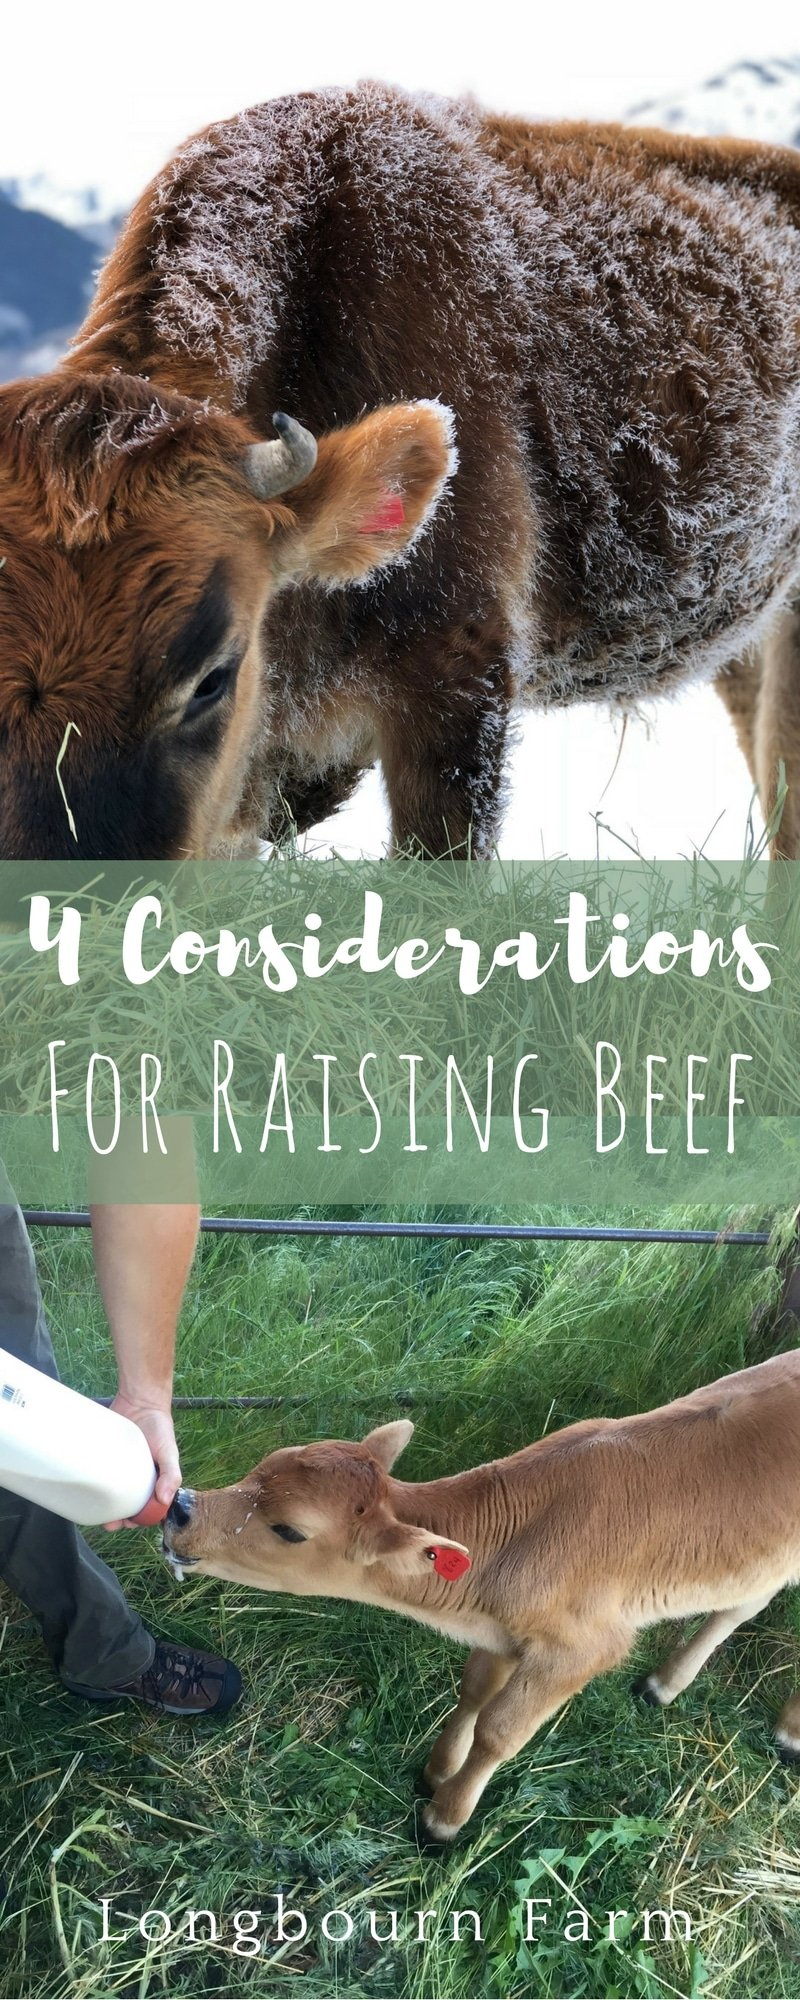 4 Questions to ask when you are thinking of raising your own beef! There are important things to consider like breed, age, feed, and timeline. Read more!